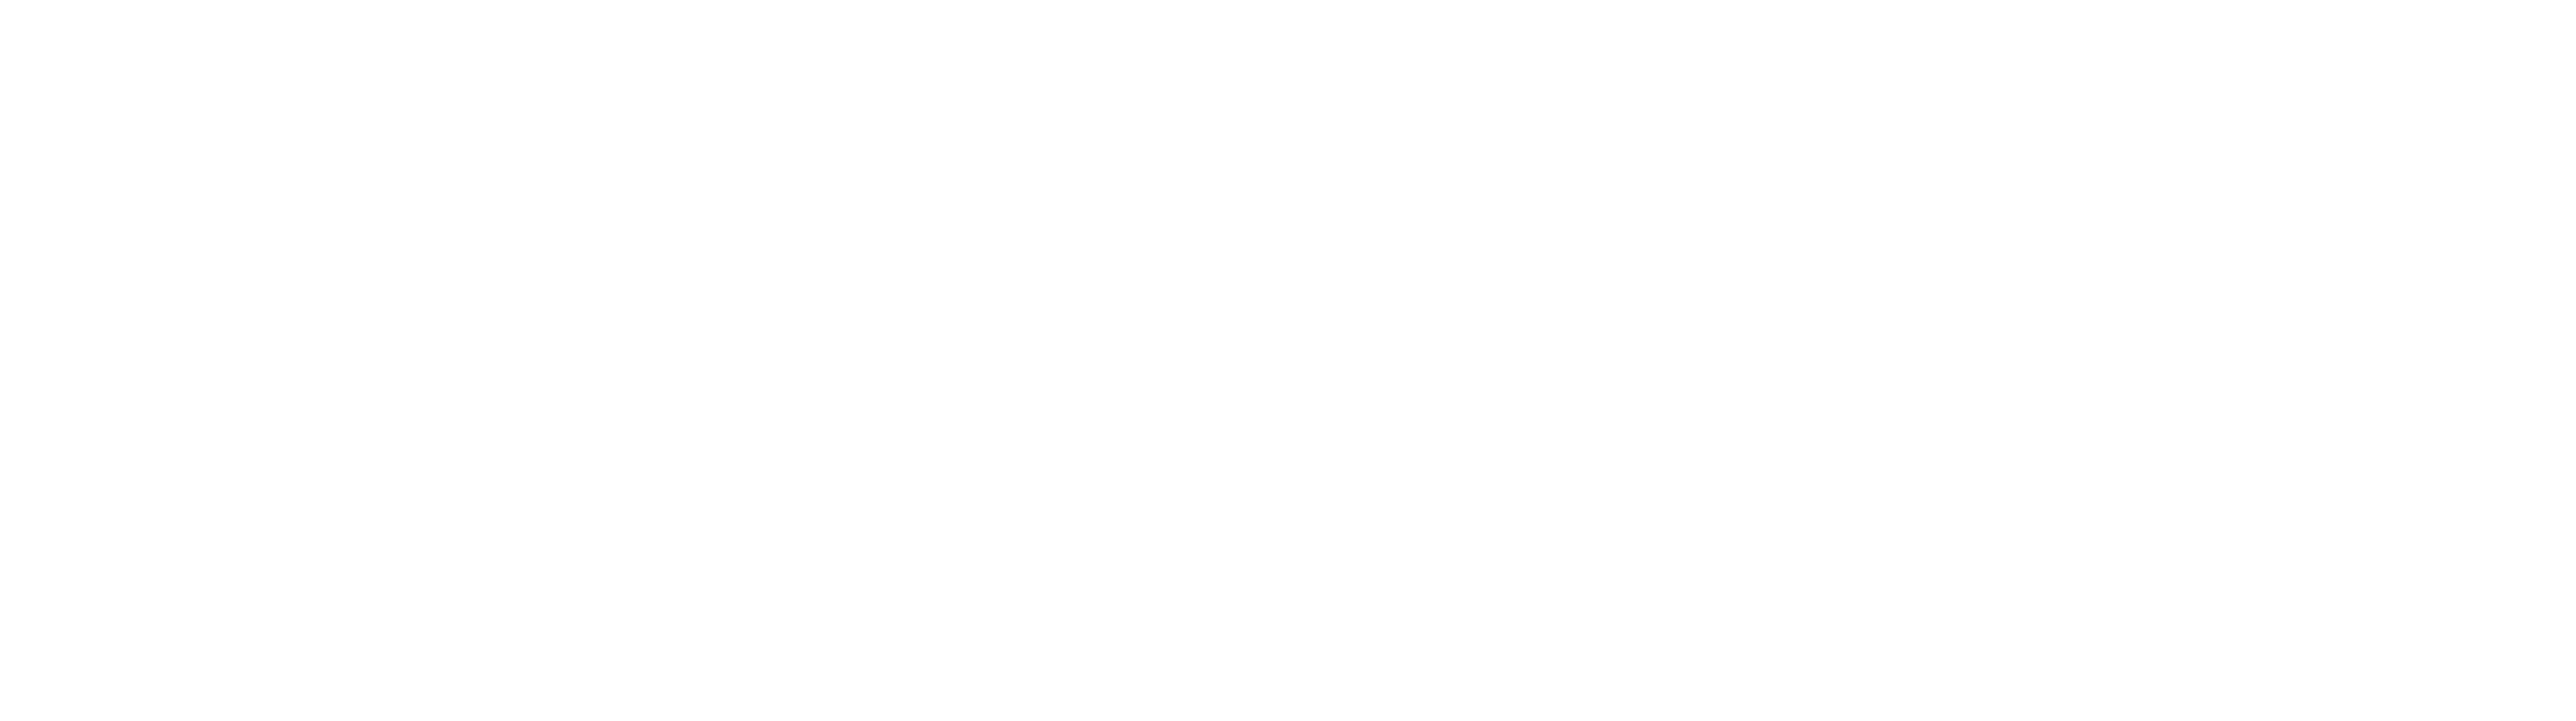 Clayton City Florist - Flower Delivery in Clayton, NC